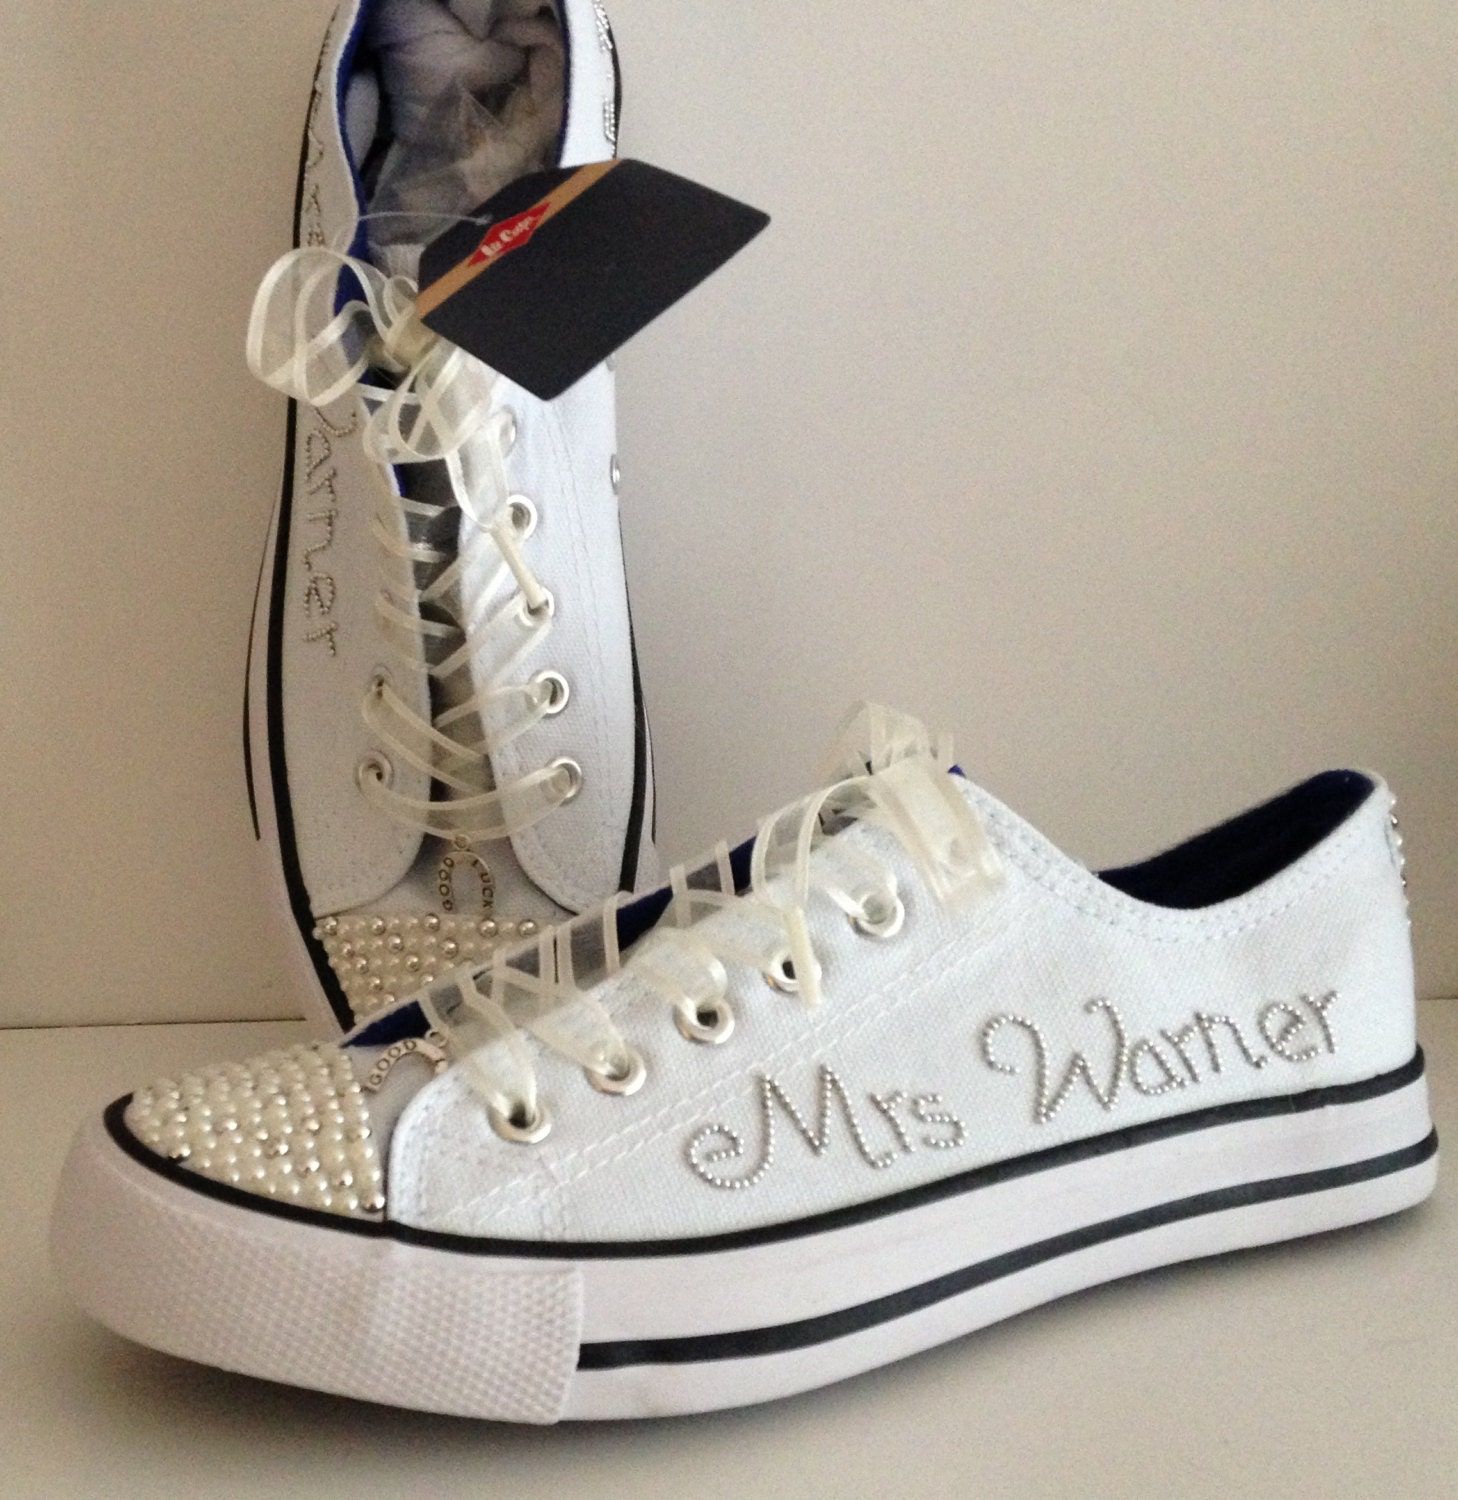 Wedding Trainers  Wedding Sneakers  Wedding Shoes  Wedding Accessories  Occasion Shoes  Bridal Footwear  Personalised  Bride Trainers